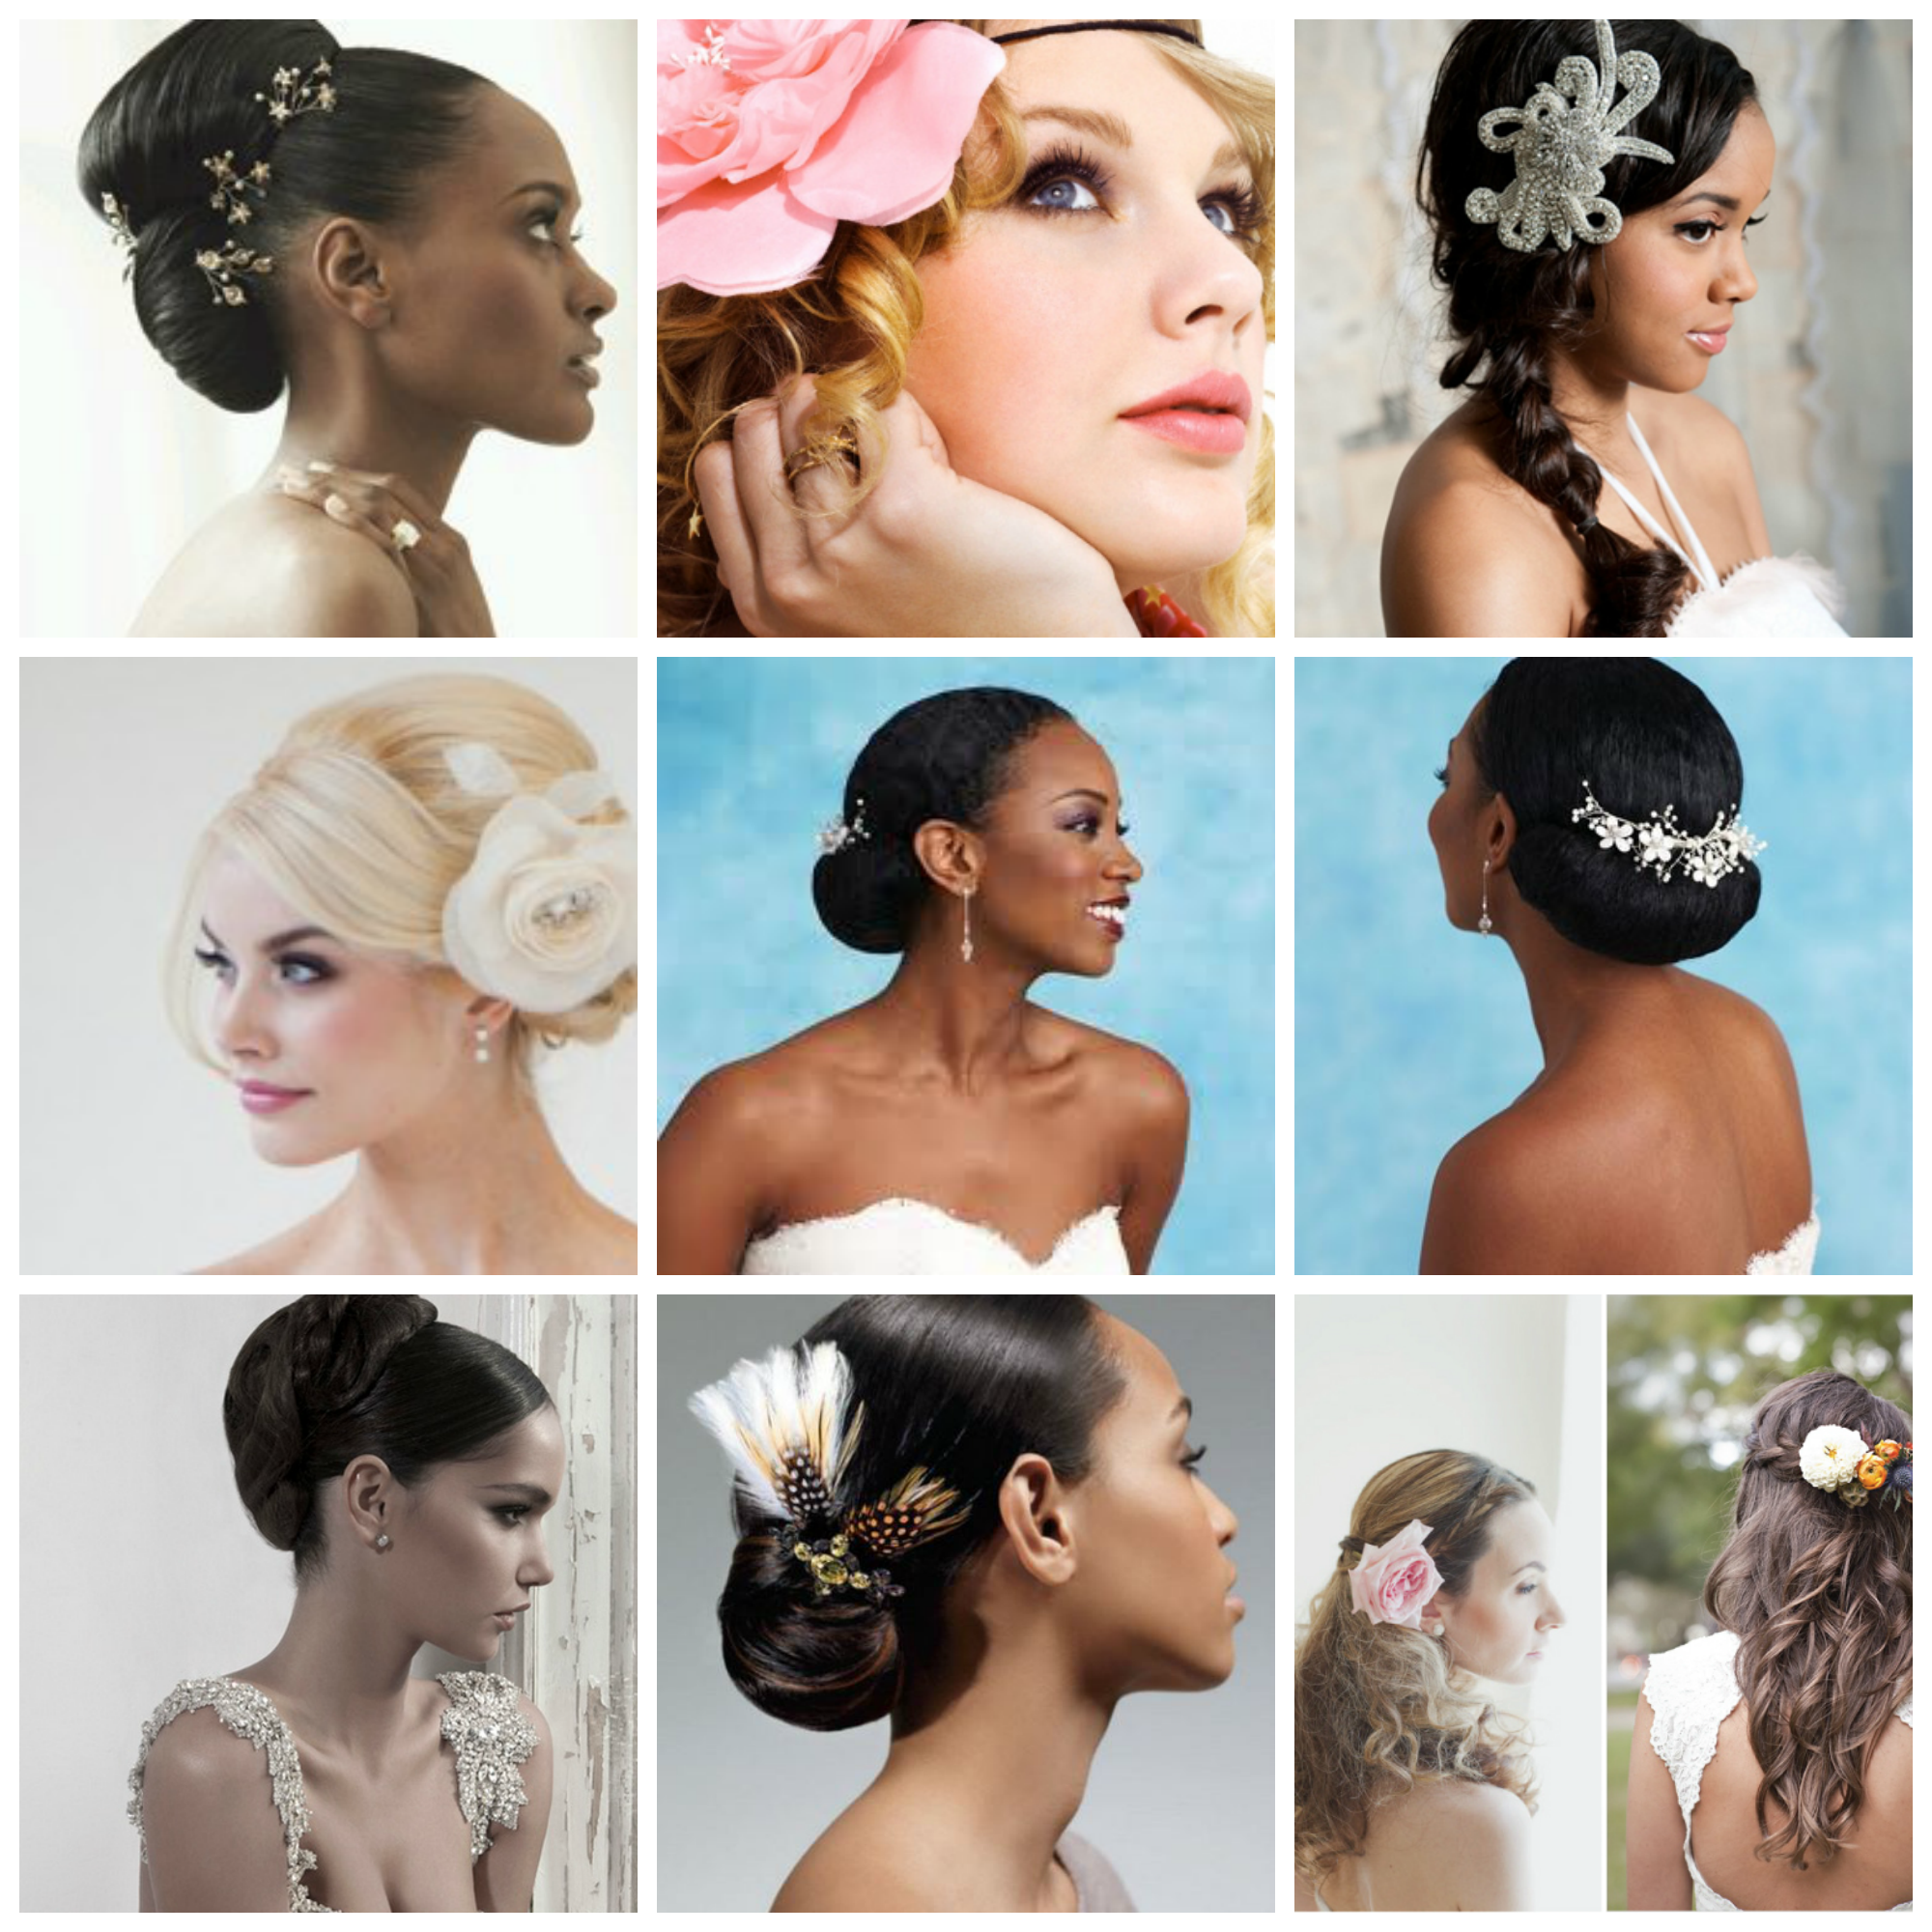 Comicsfancompanion The Awesome Prom Hairstyles For Mixed